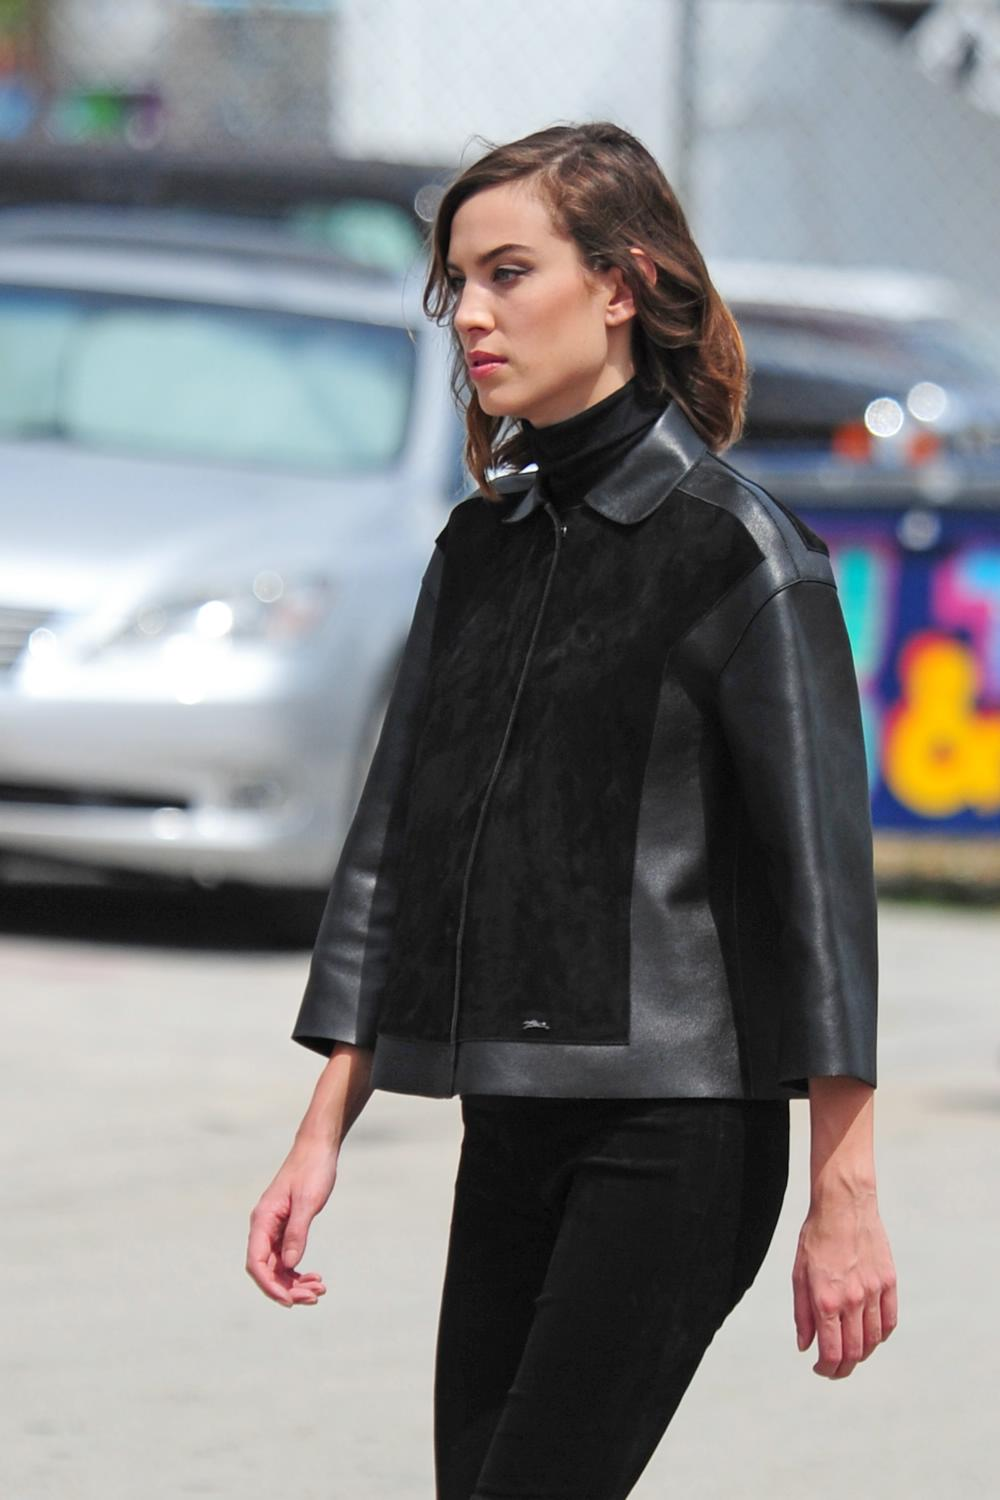 Alexa Chung Seen Working On A Photoshoots Around Miami Art District-1